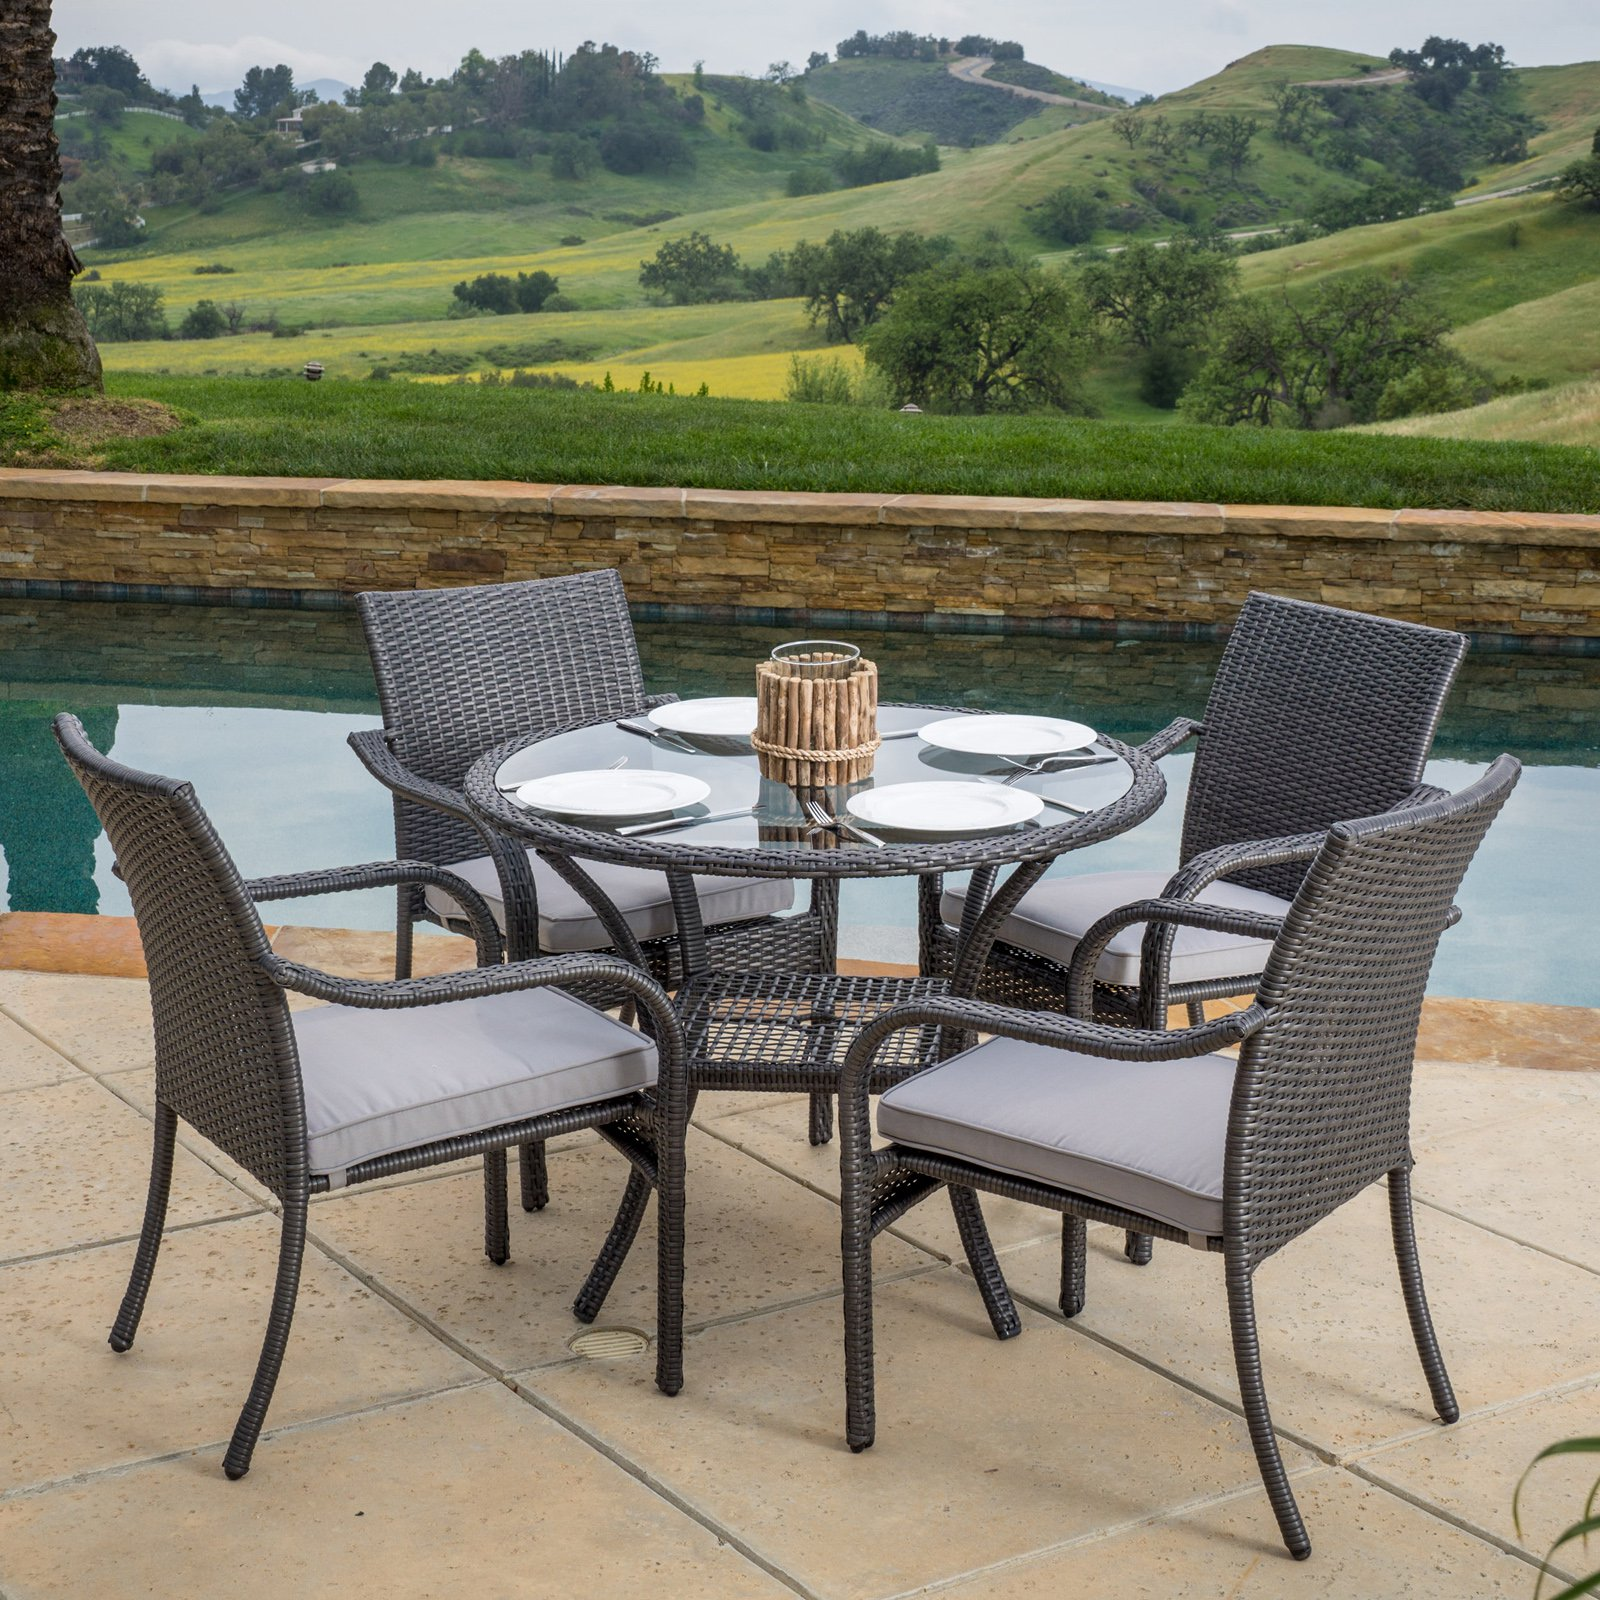 Best Selling Home Lakeside 5 Piece Wicker Patio Dining Set